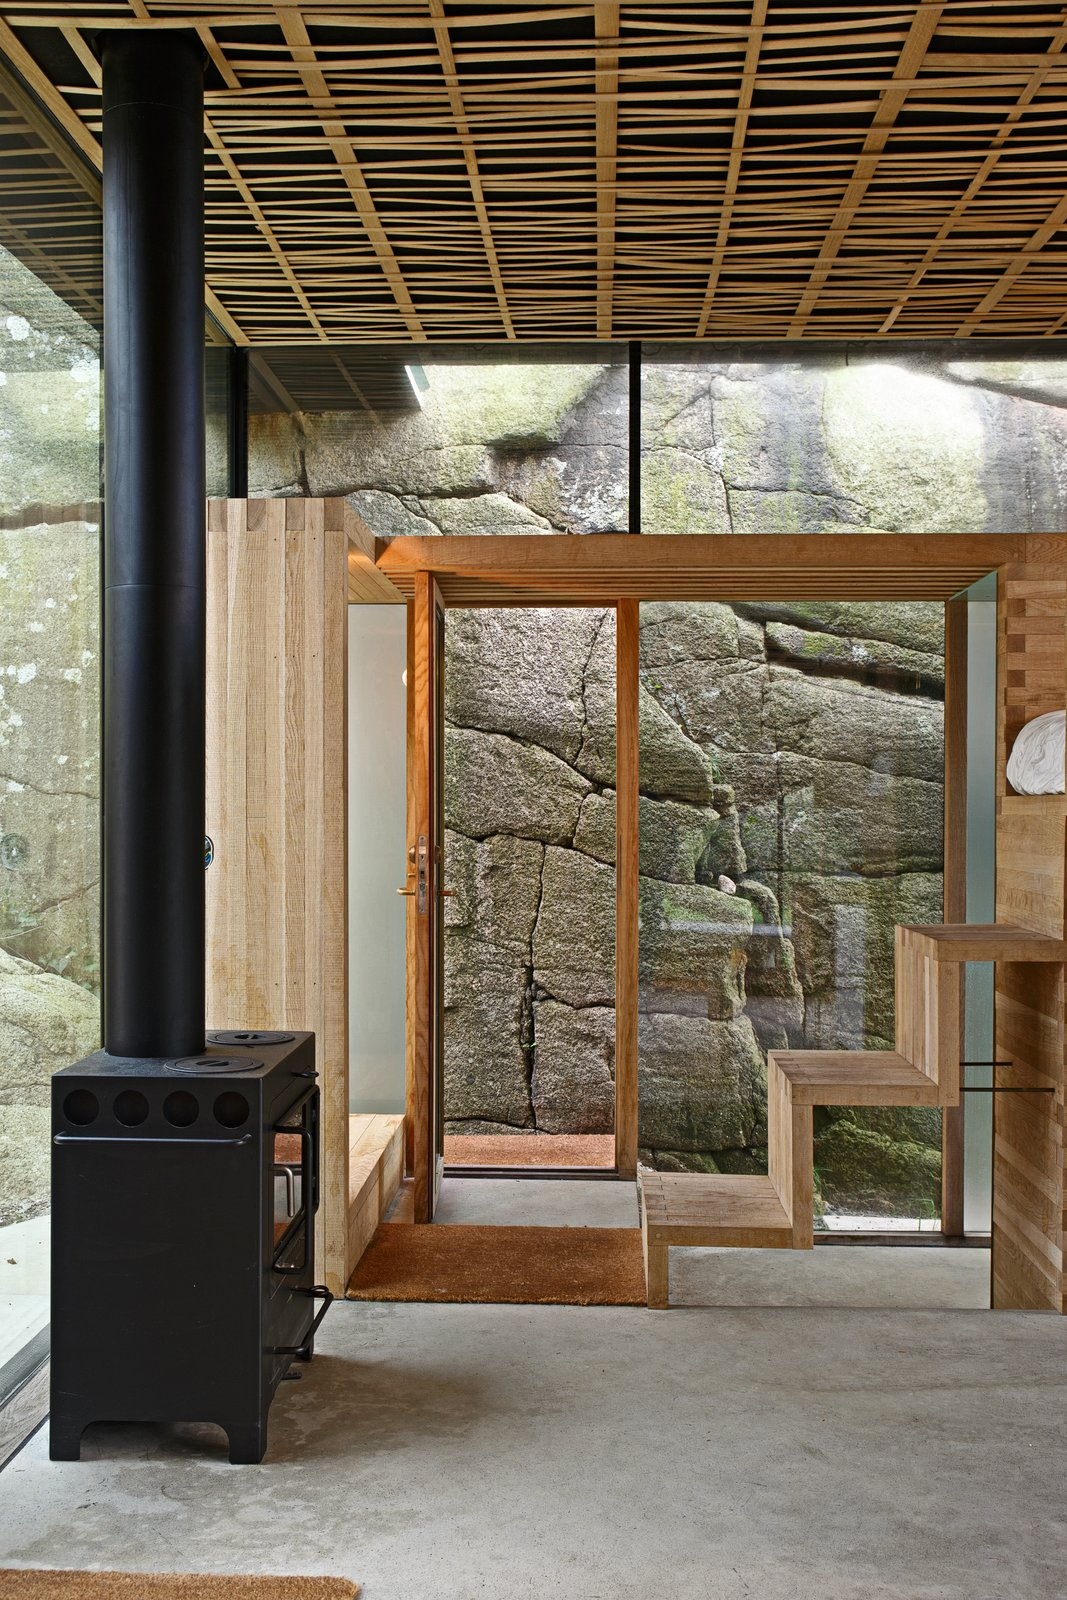 Living Room, Wood Burning Fireplace, and Concrete Floor Oak steps lead to the loft bed.  Photo 4 of 8 in This Norwegian Cabin's Roof Doubles as an Observation Deck